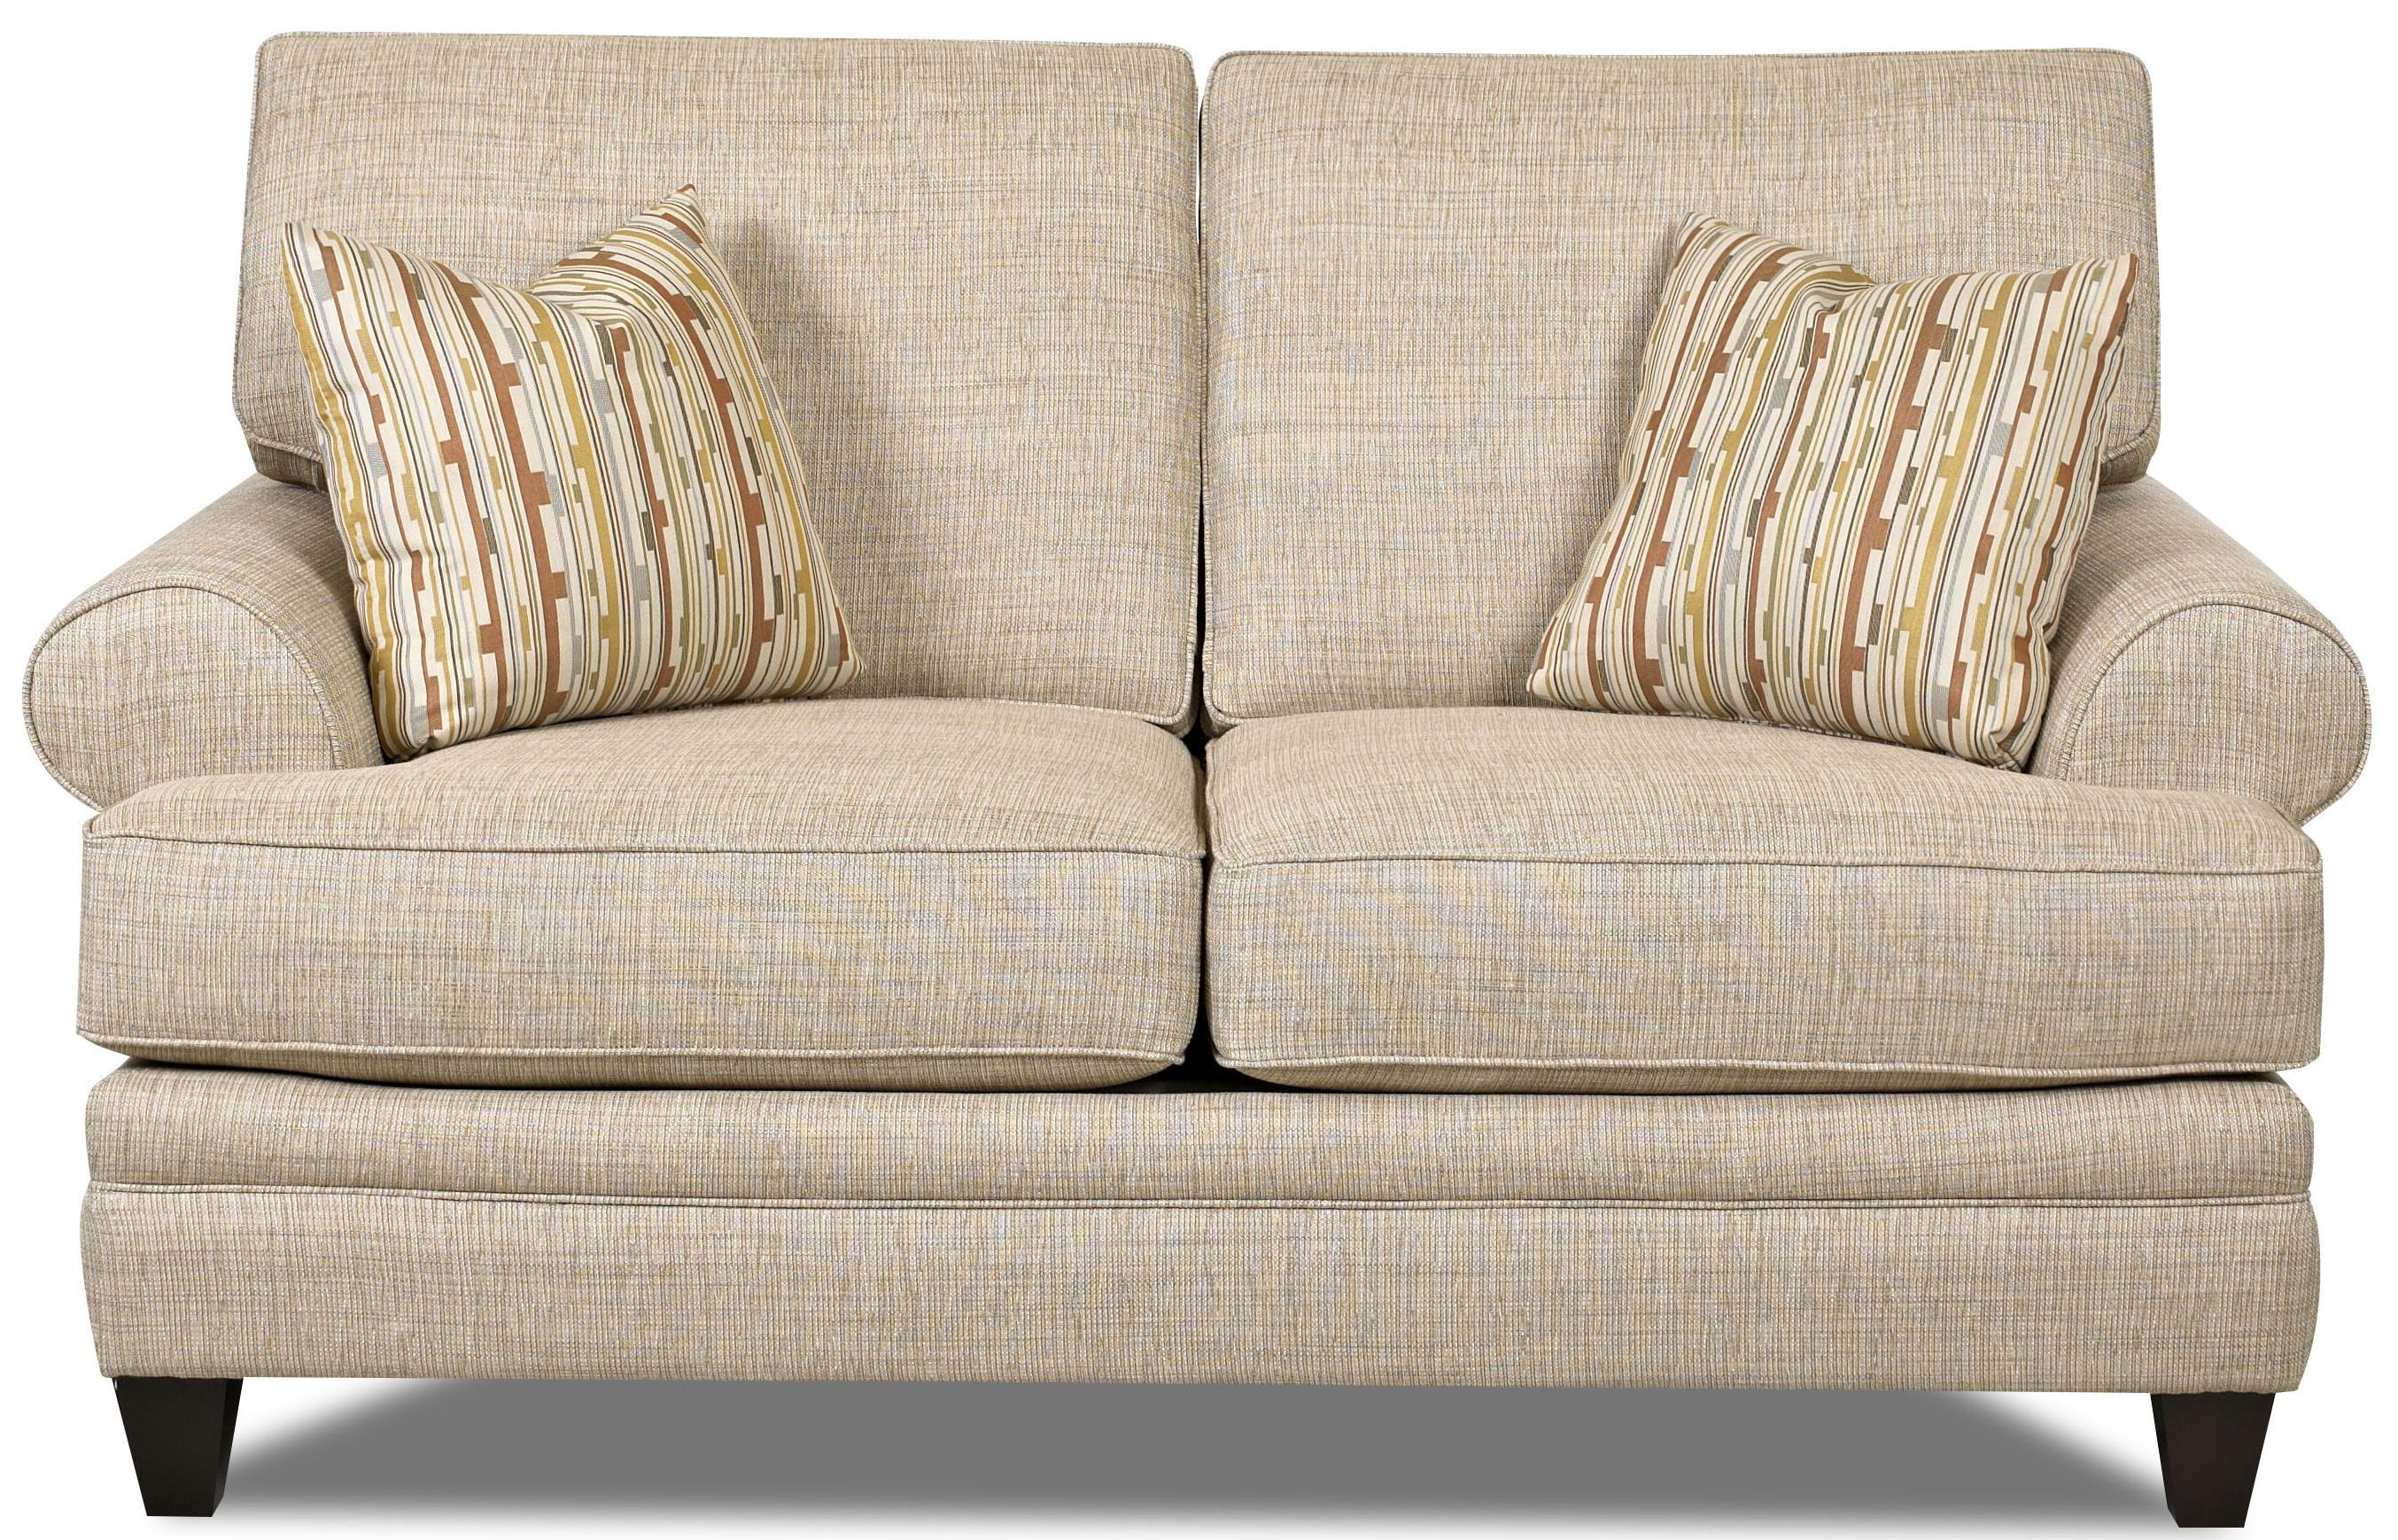 Fresno Loveseat by Klaussner at Northeast Factory Direct